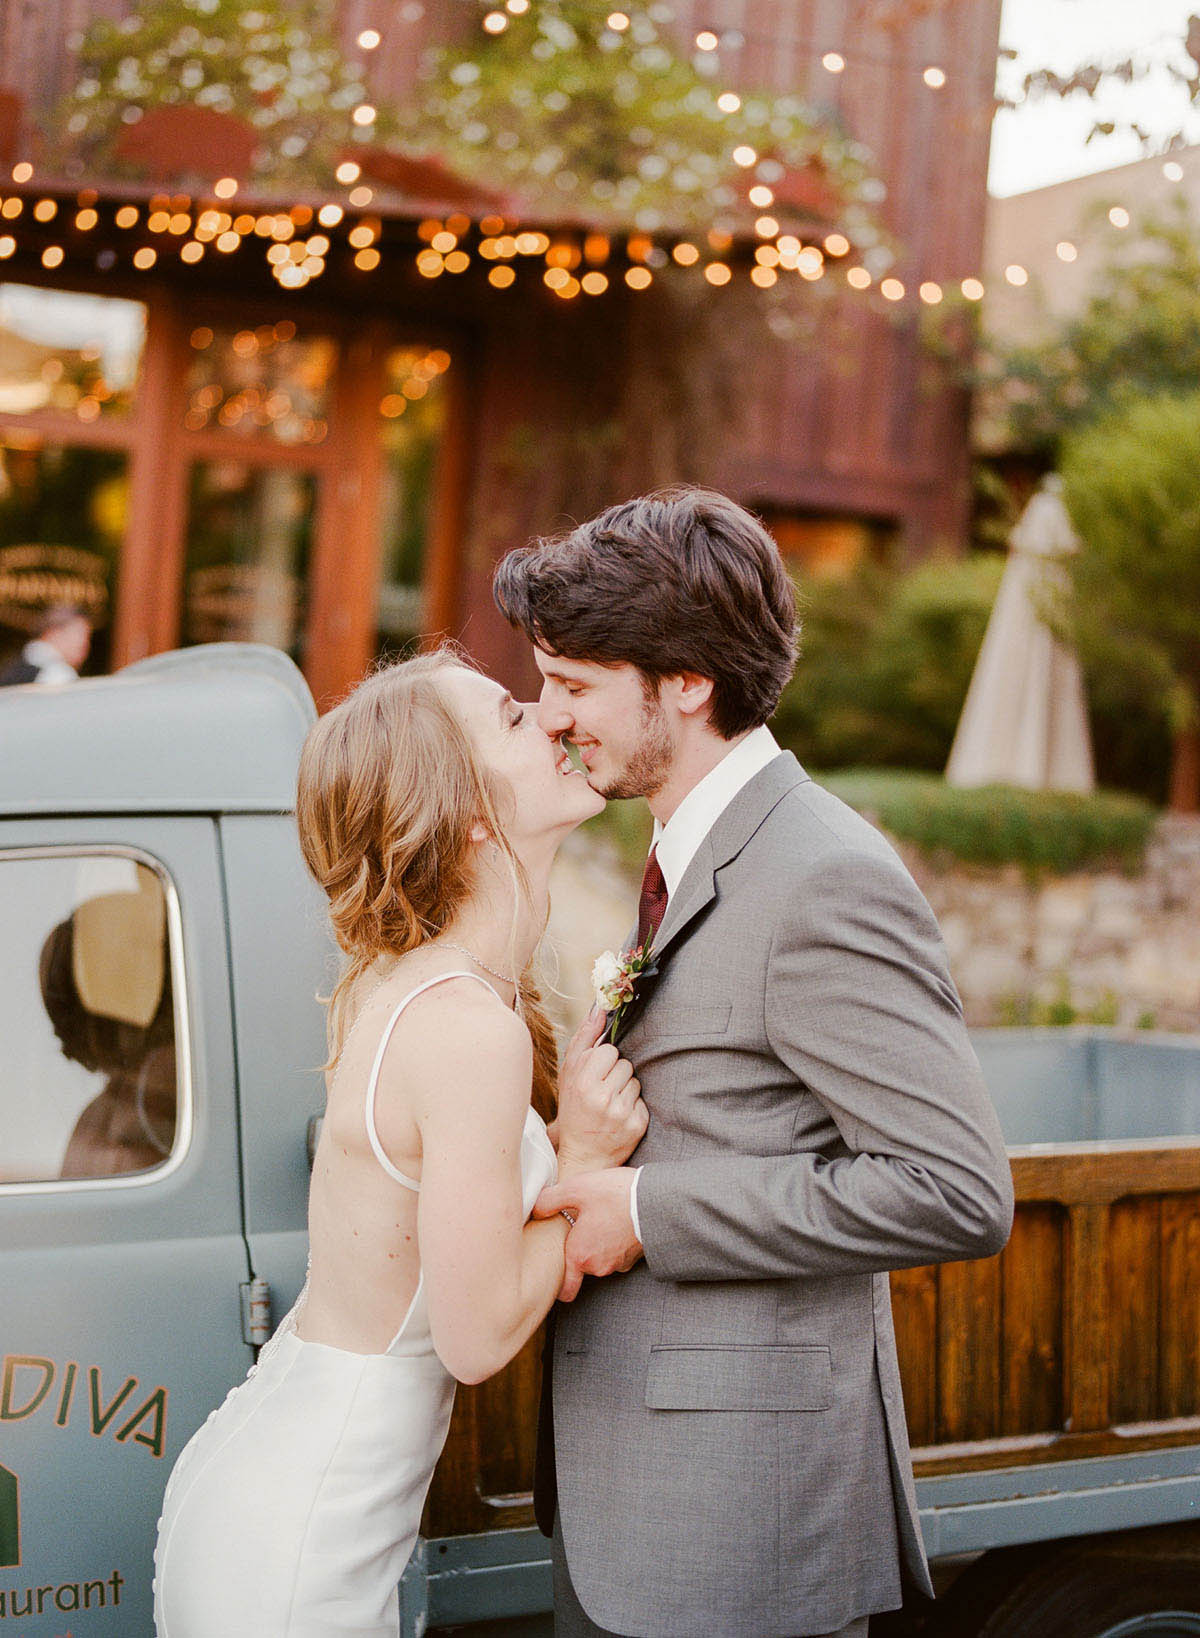 37-bride-groom-kiss-vintage-car.jpg